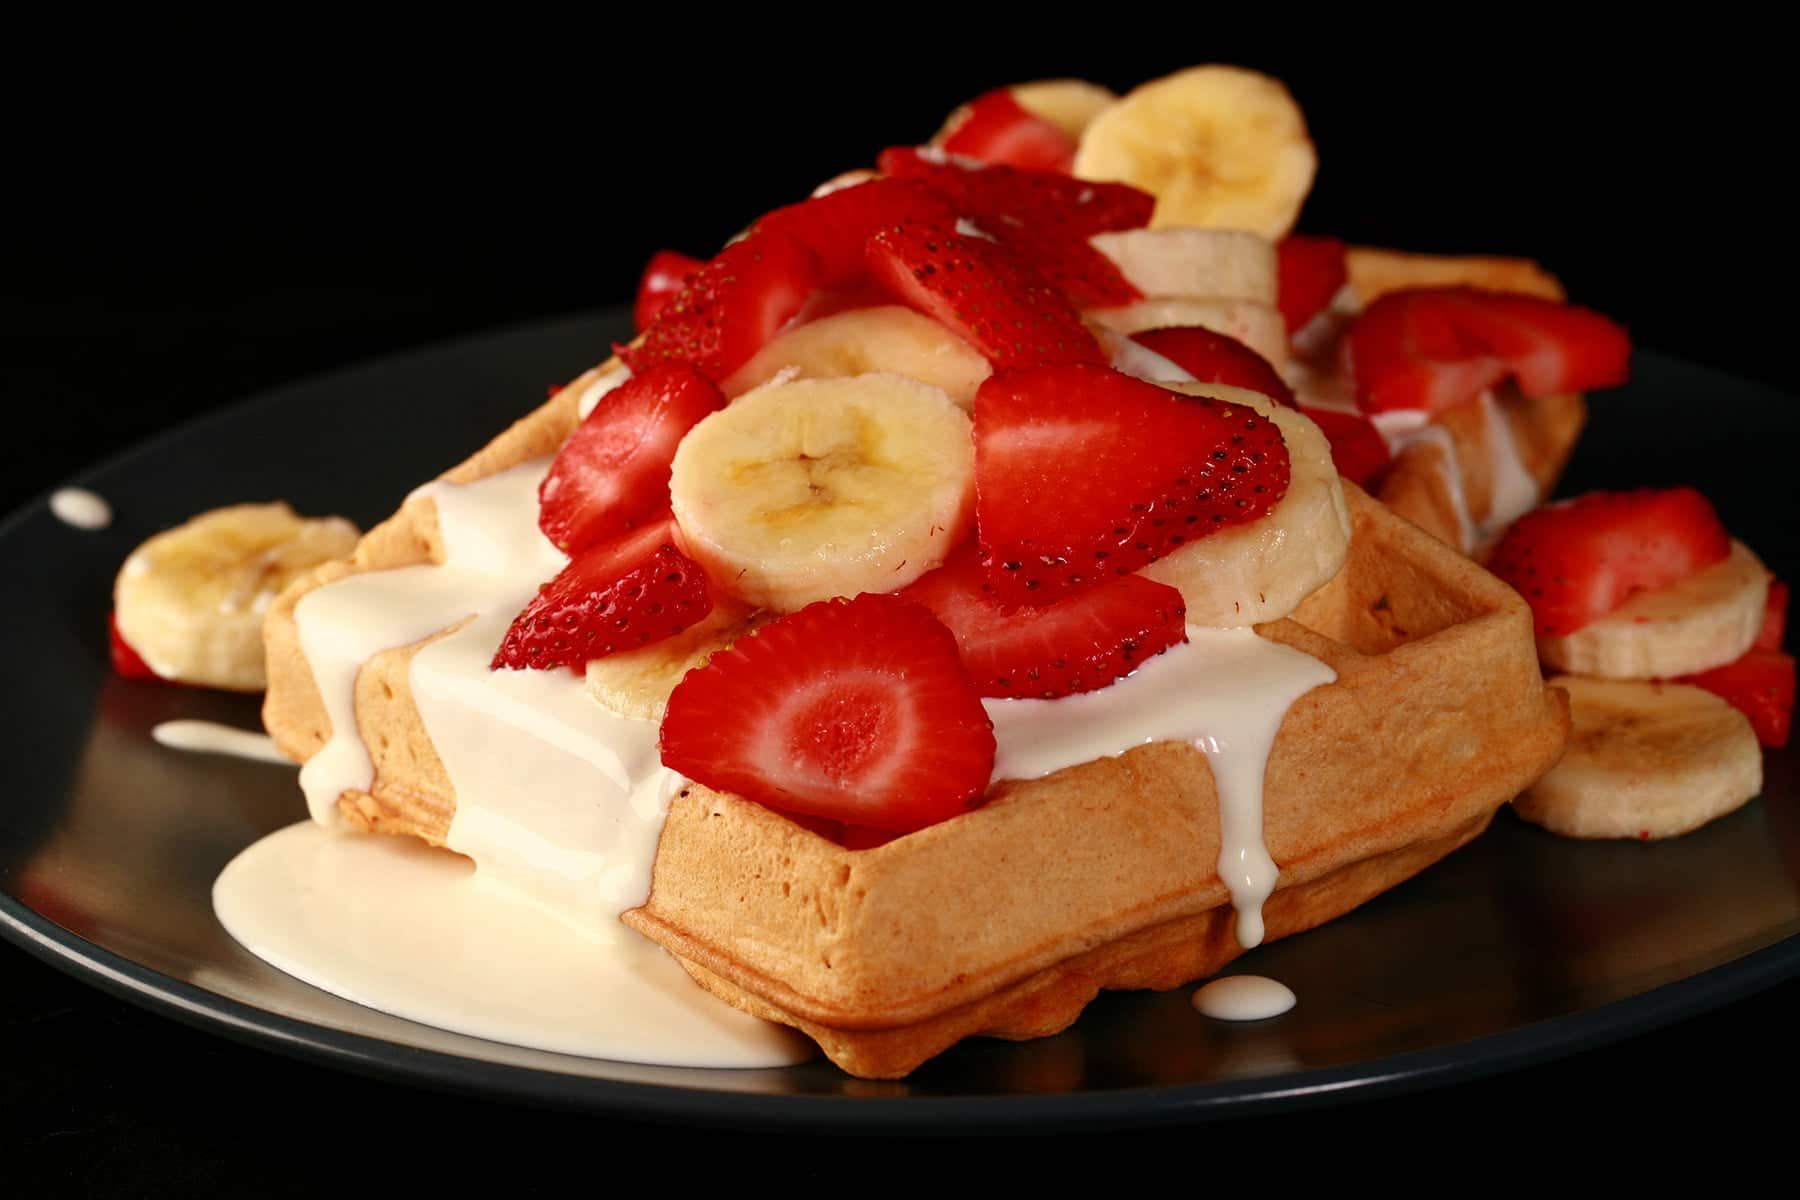 2 Ambrosia Waffles - Belgian waffles with cream cheese sauce, topped with sliced strawberries and sliced bananas - on a blue plate.